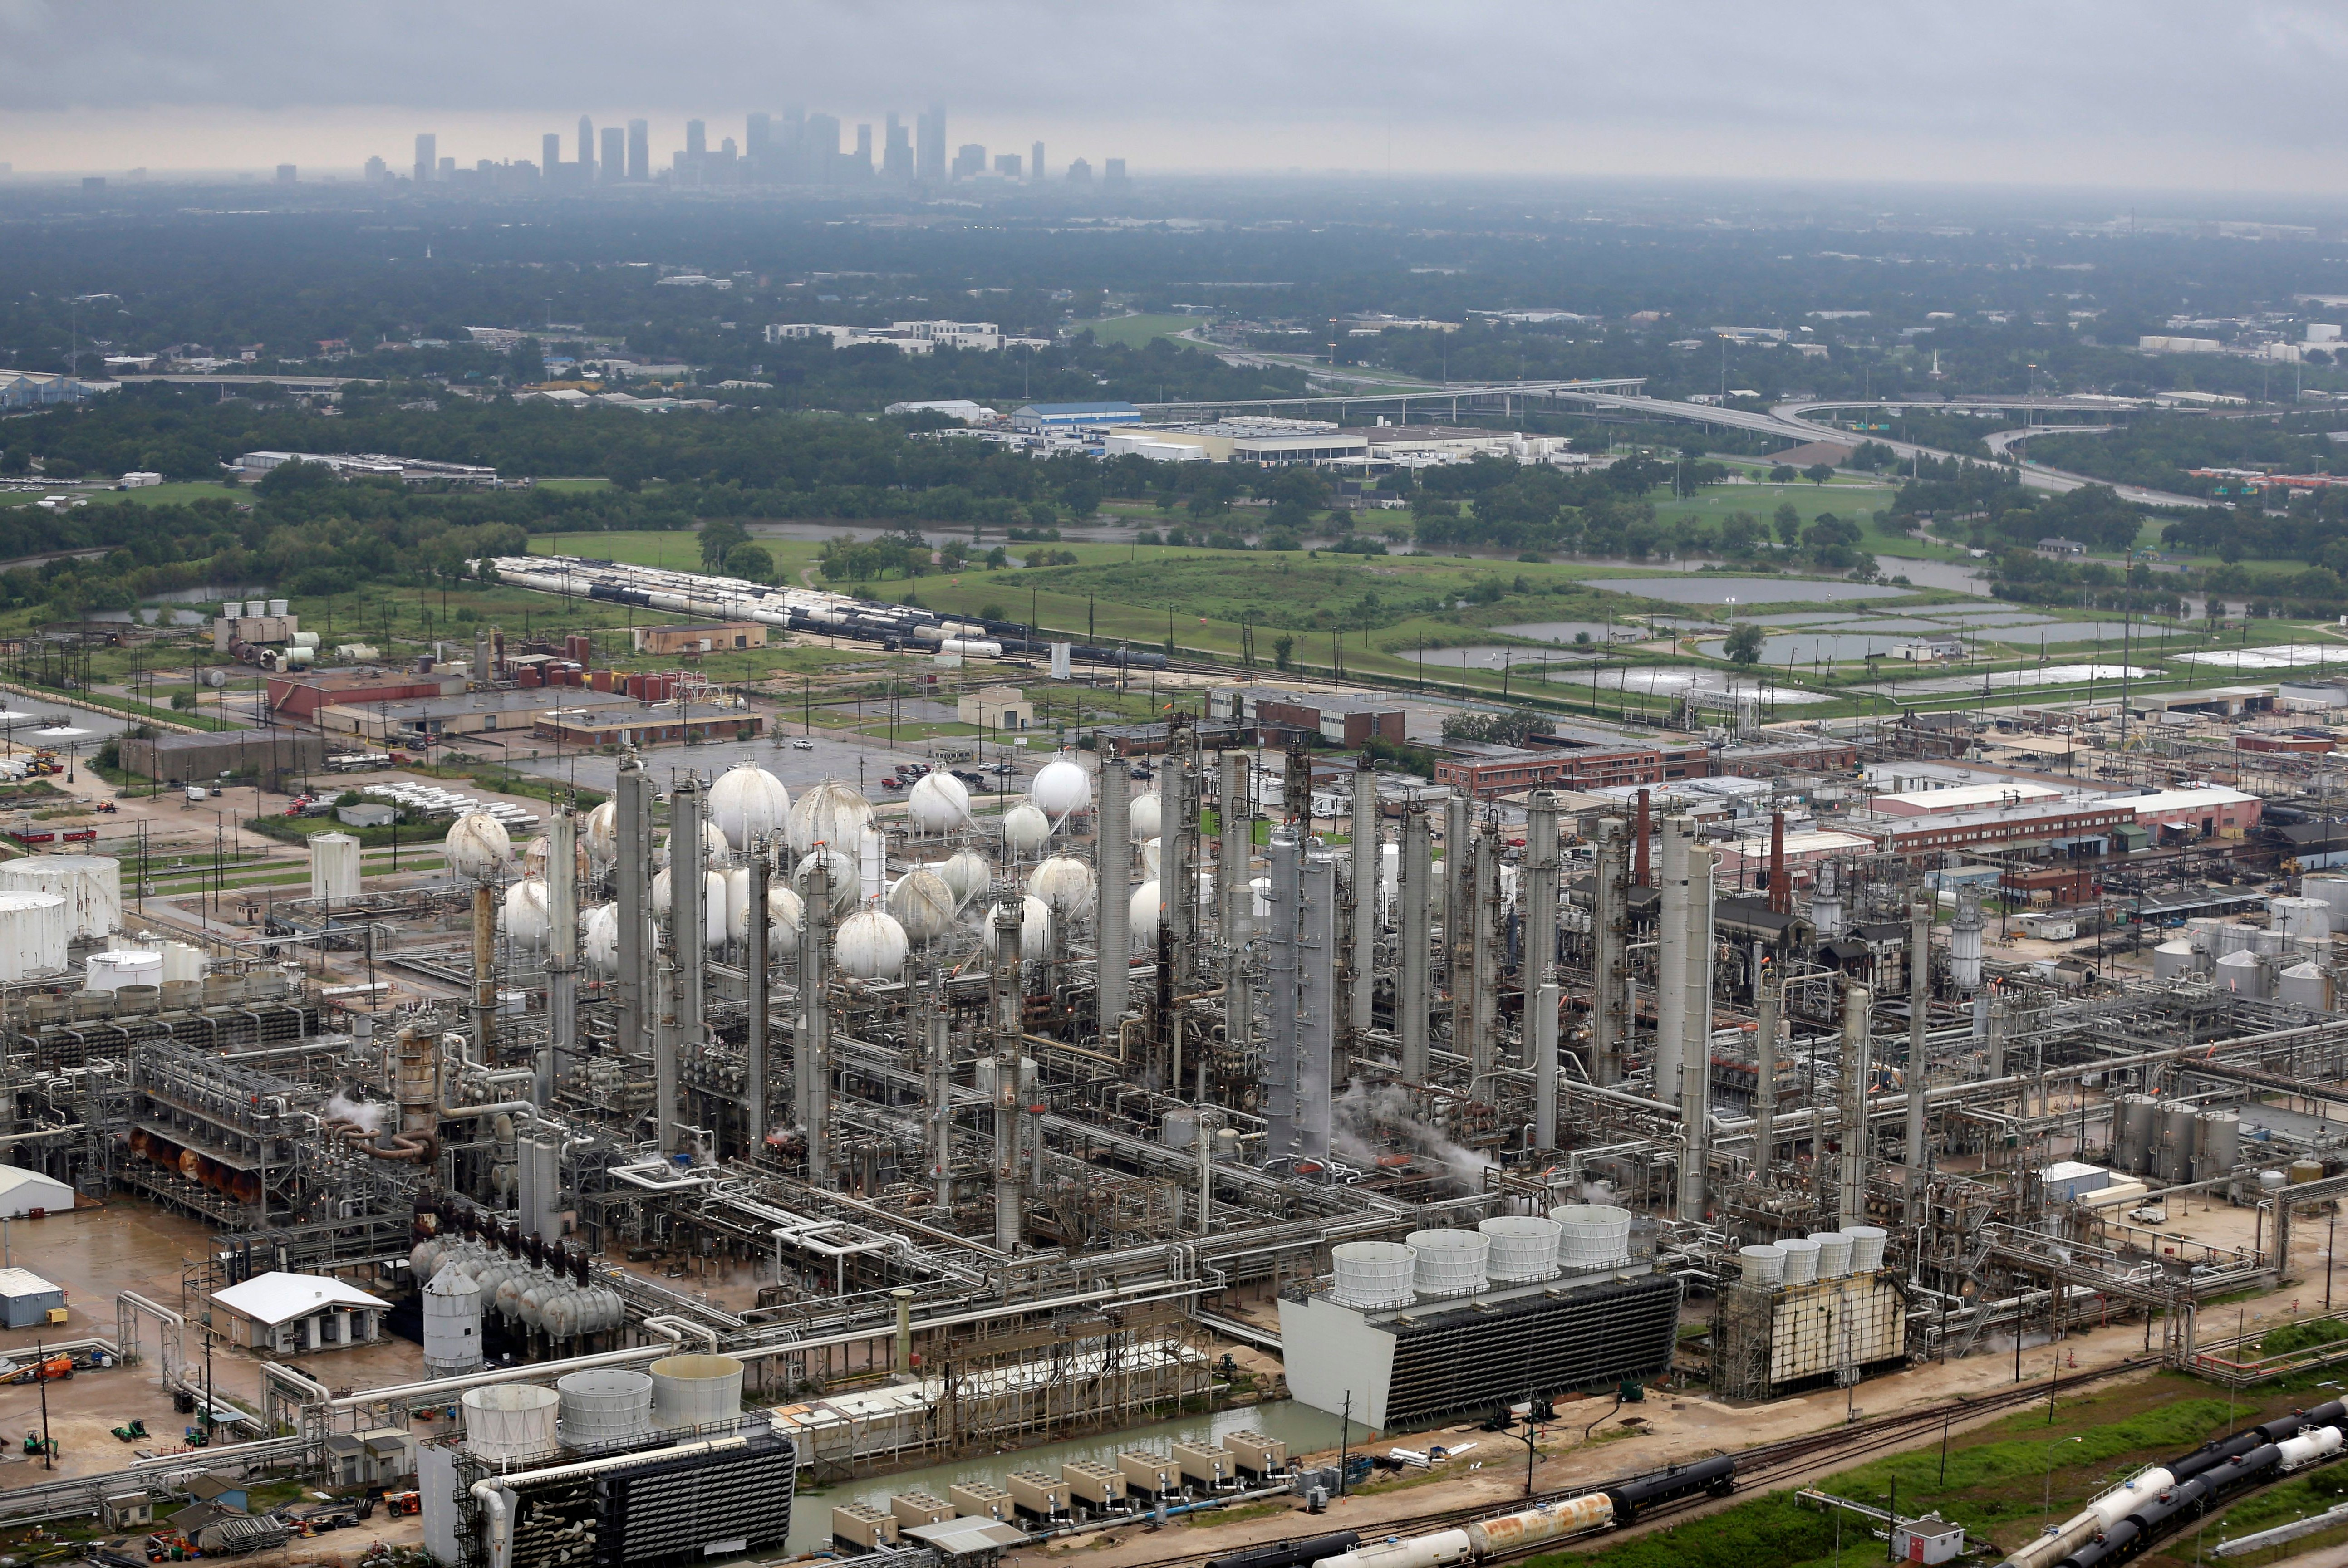 FILE: An aerial photo showing the TPC petrochemical plant near downtown Houston, background, on Tuesday, Aug. 29, 2017.